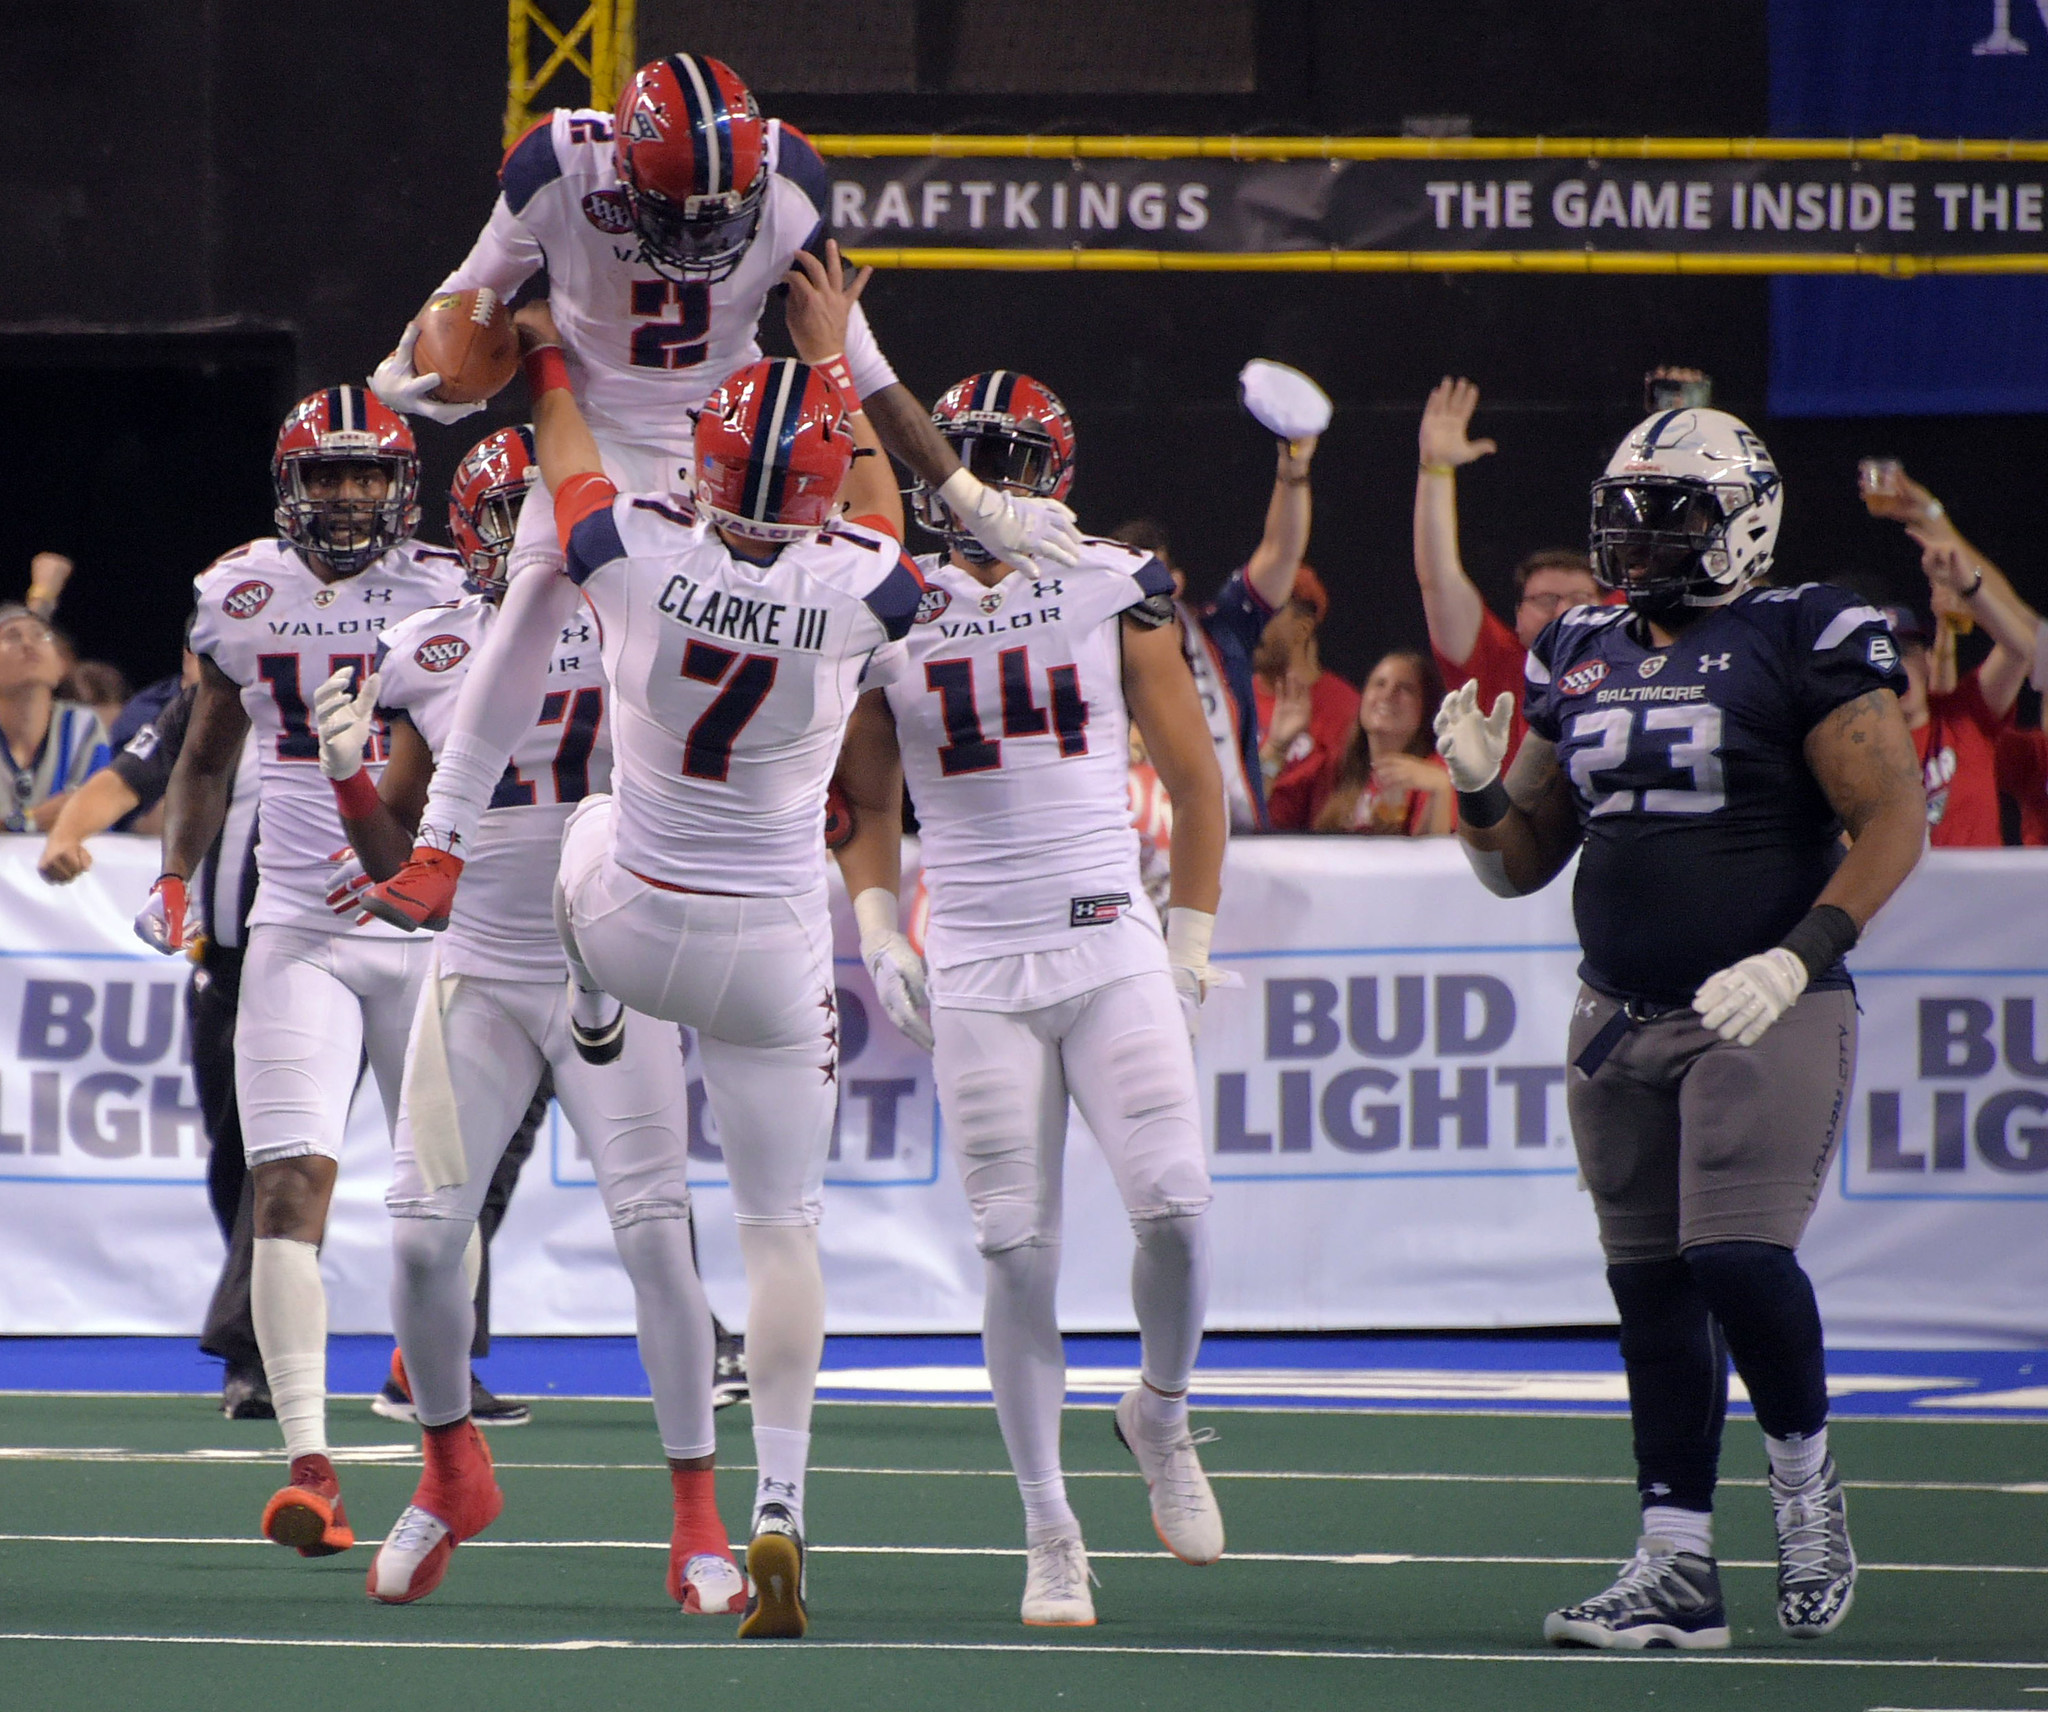 Haunted by ArenaBowl loss, high-powered Baltimore Brigade eager to